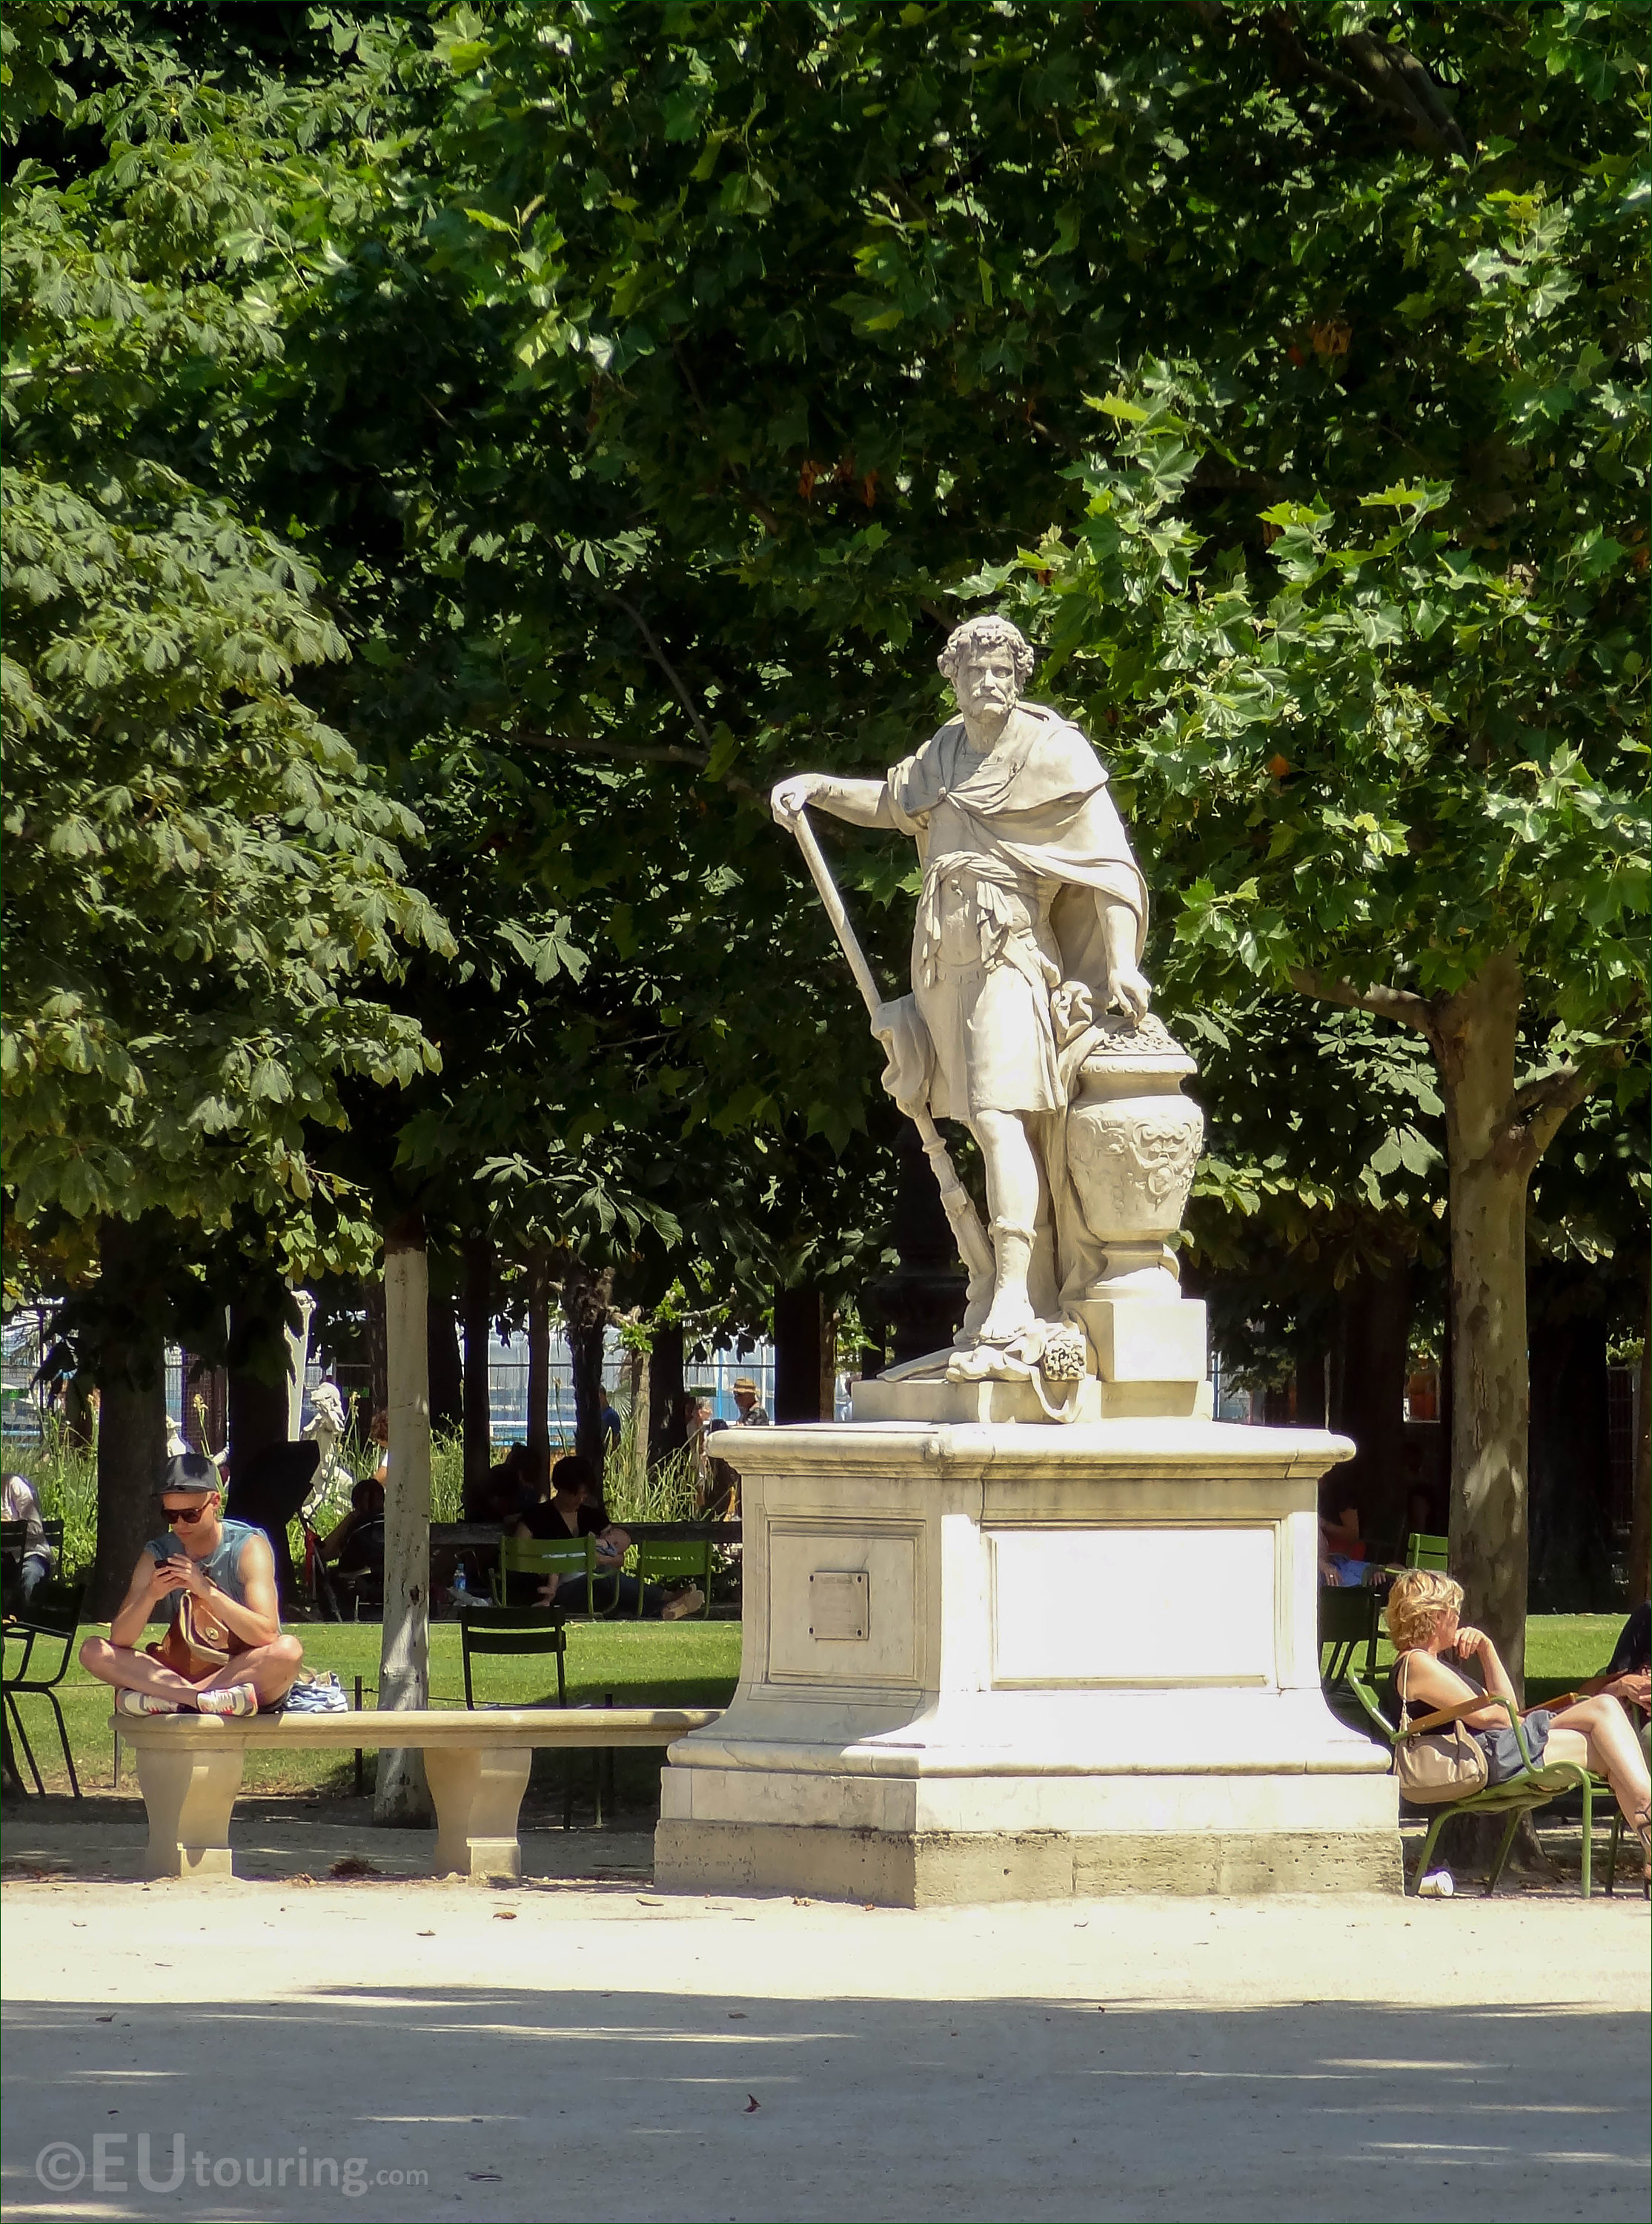 s of Hannibal statue in Jardin des Tuileries Page 112